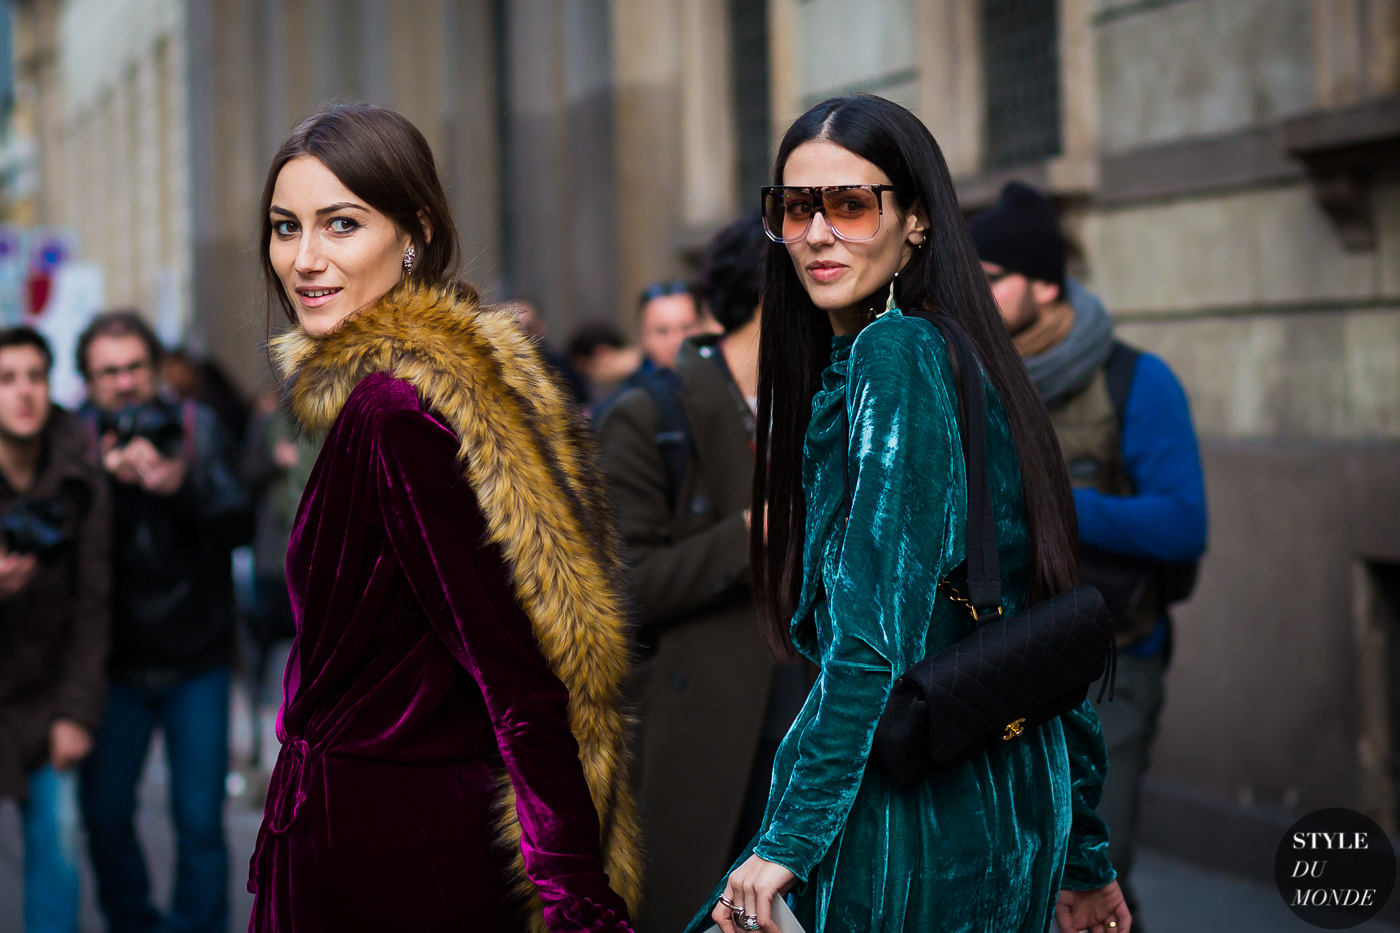 Giorgia Tordini and Gilda Ambrosio Street Style Street Fashion Streetsnaps by STYLEDUMONDE Street Style Fashion Photography